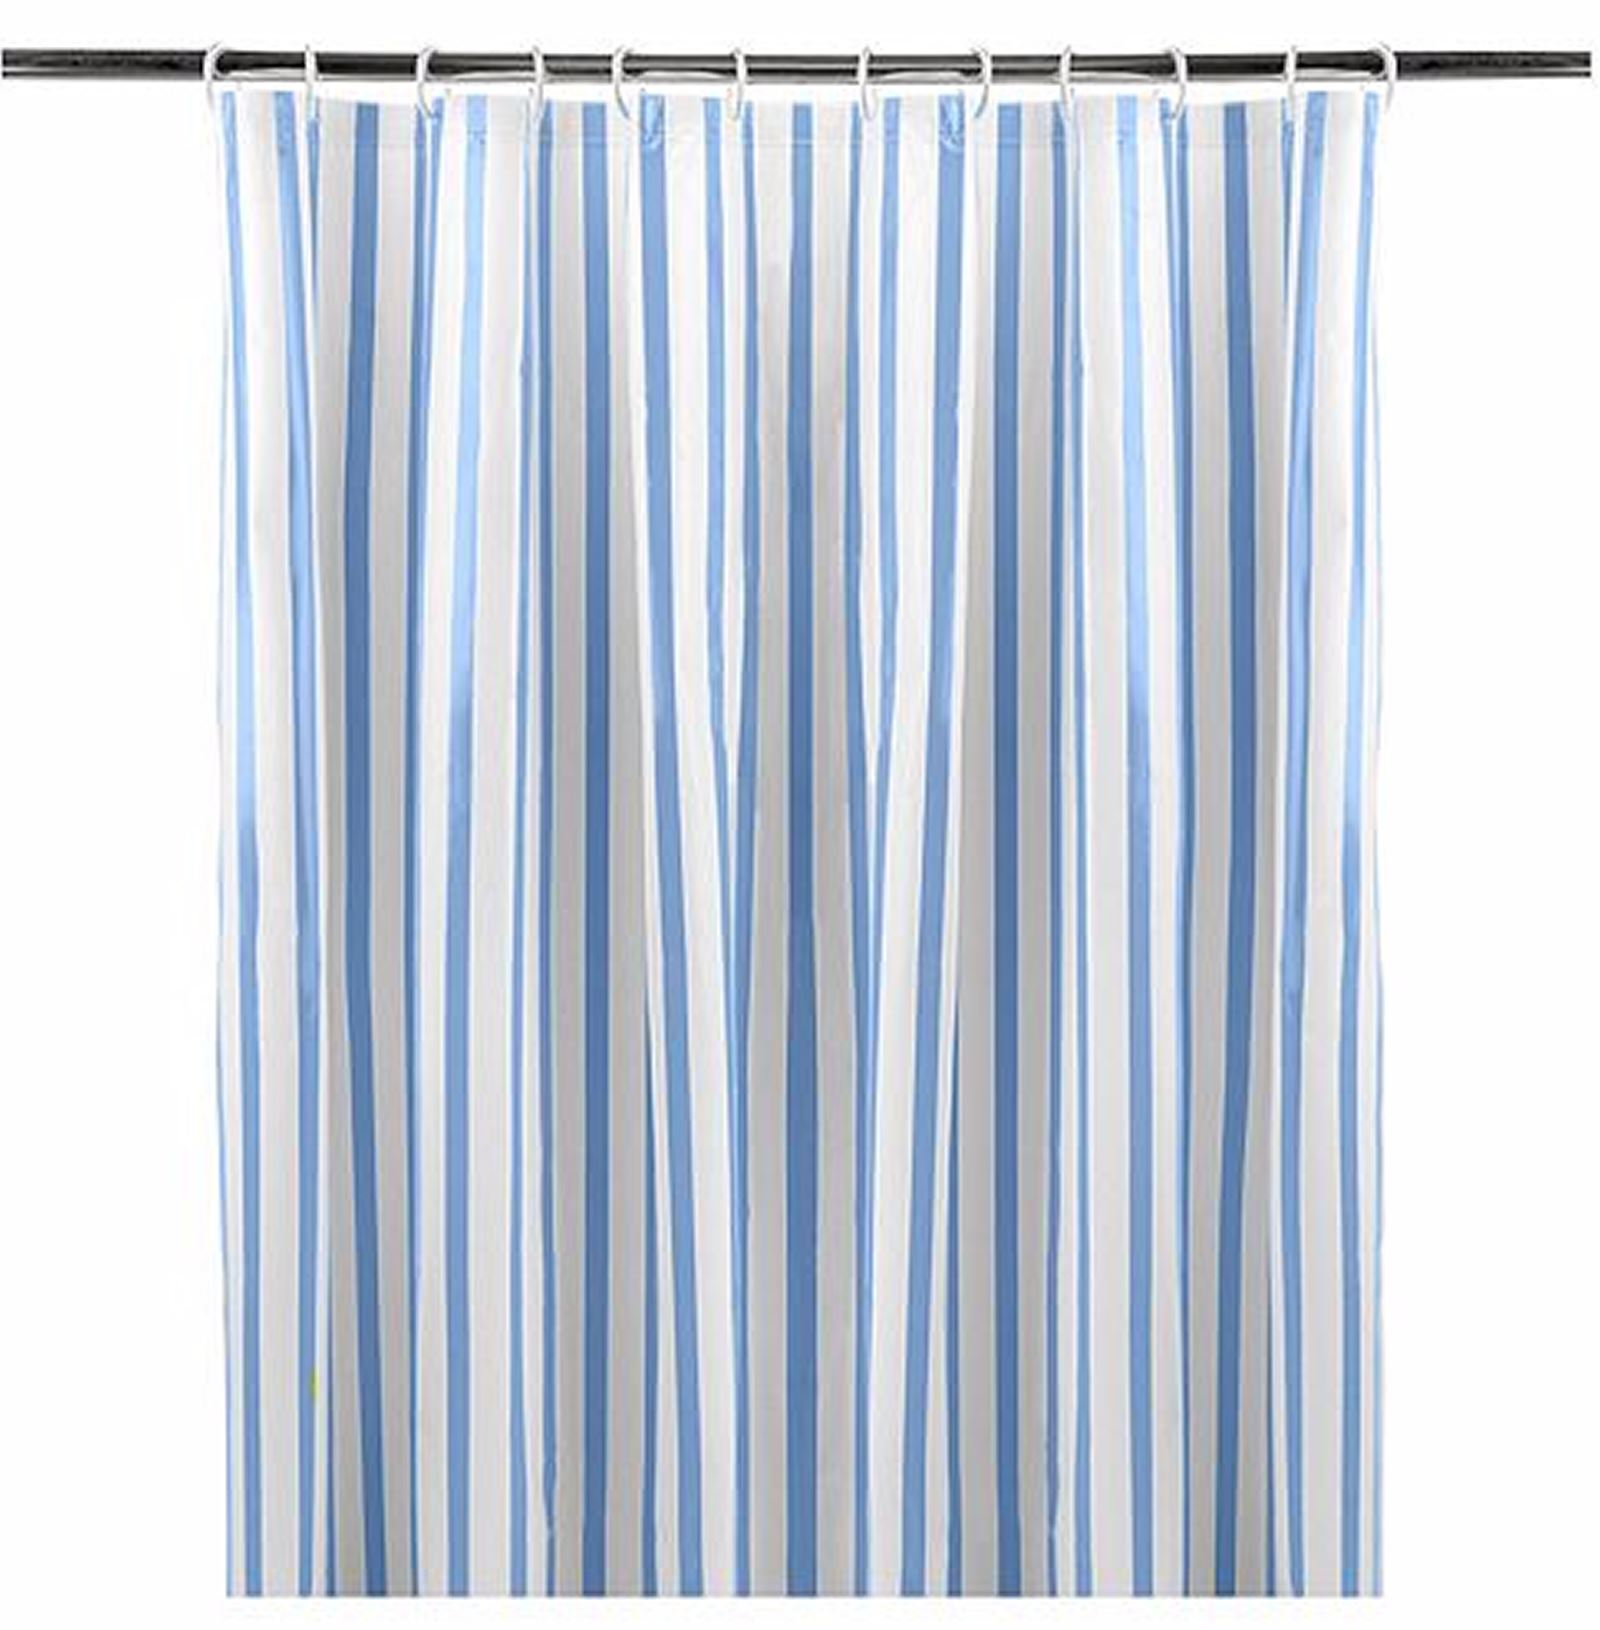 Blue and White Retro Striped Shower Curtain 180x180cm Eyelet Ring ...